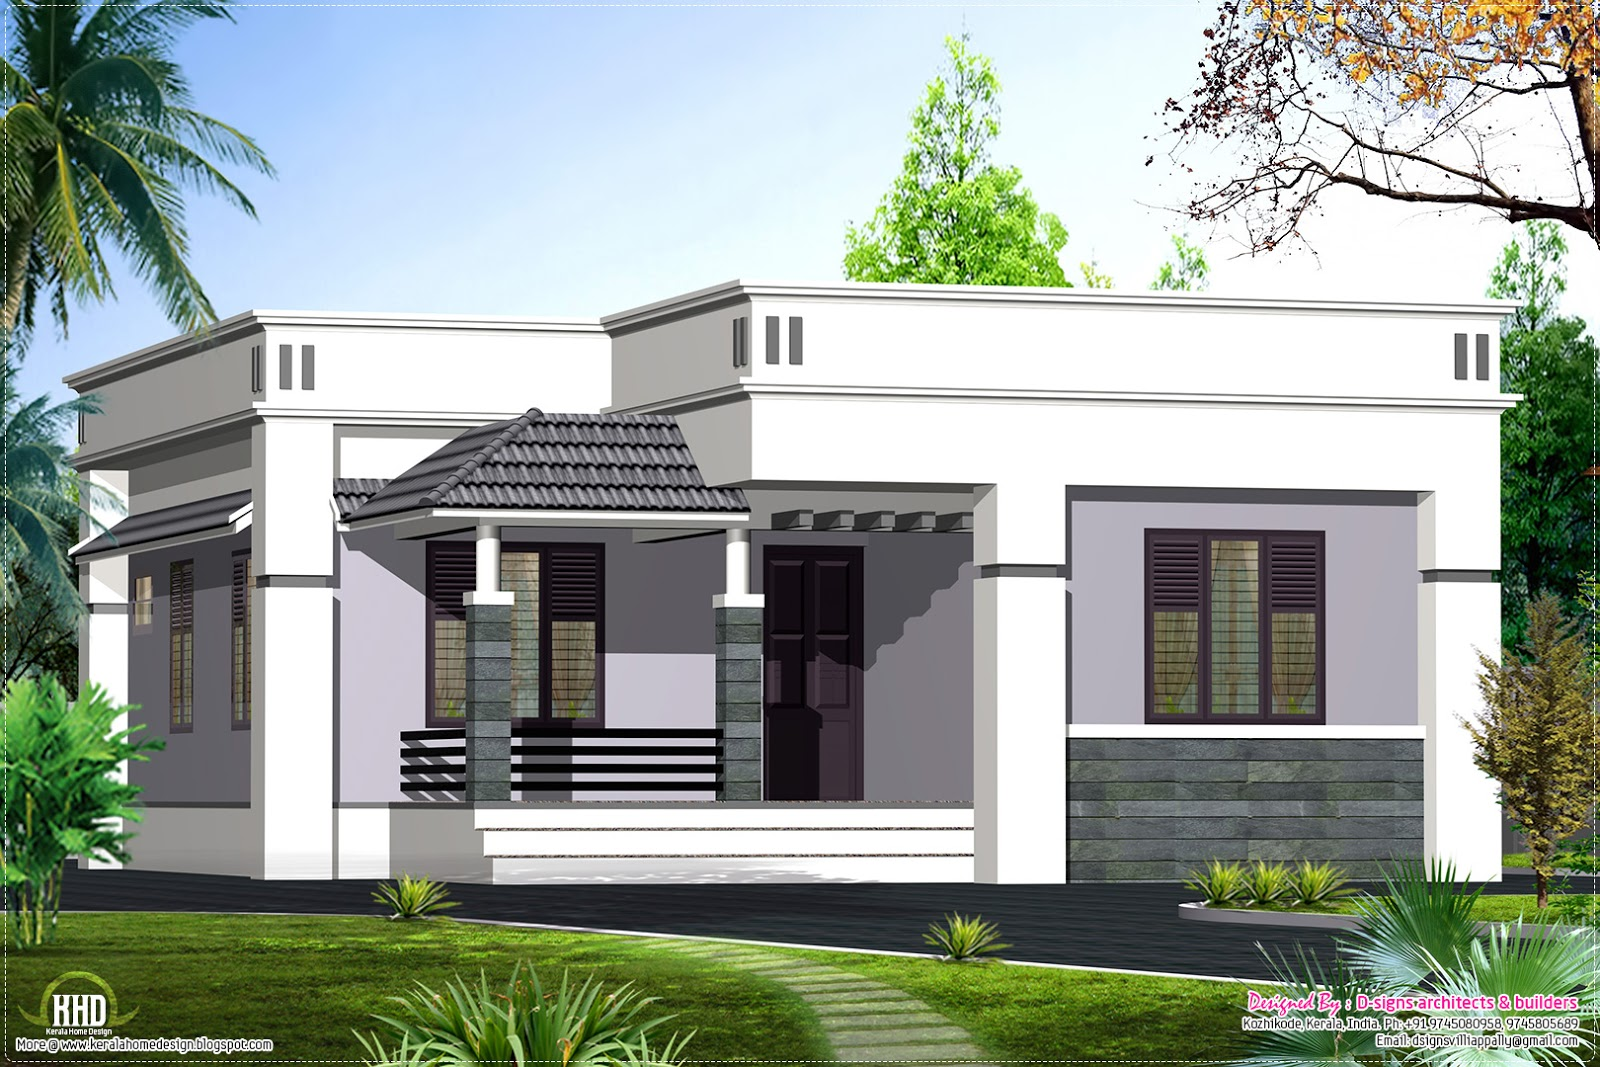 Simple house designs new simple home designs prepossessing simple house designs bedrooms search results home design